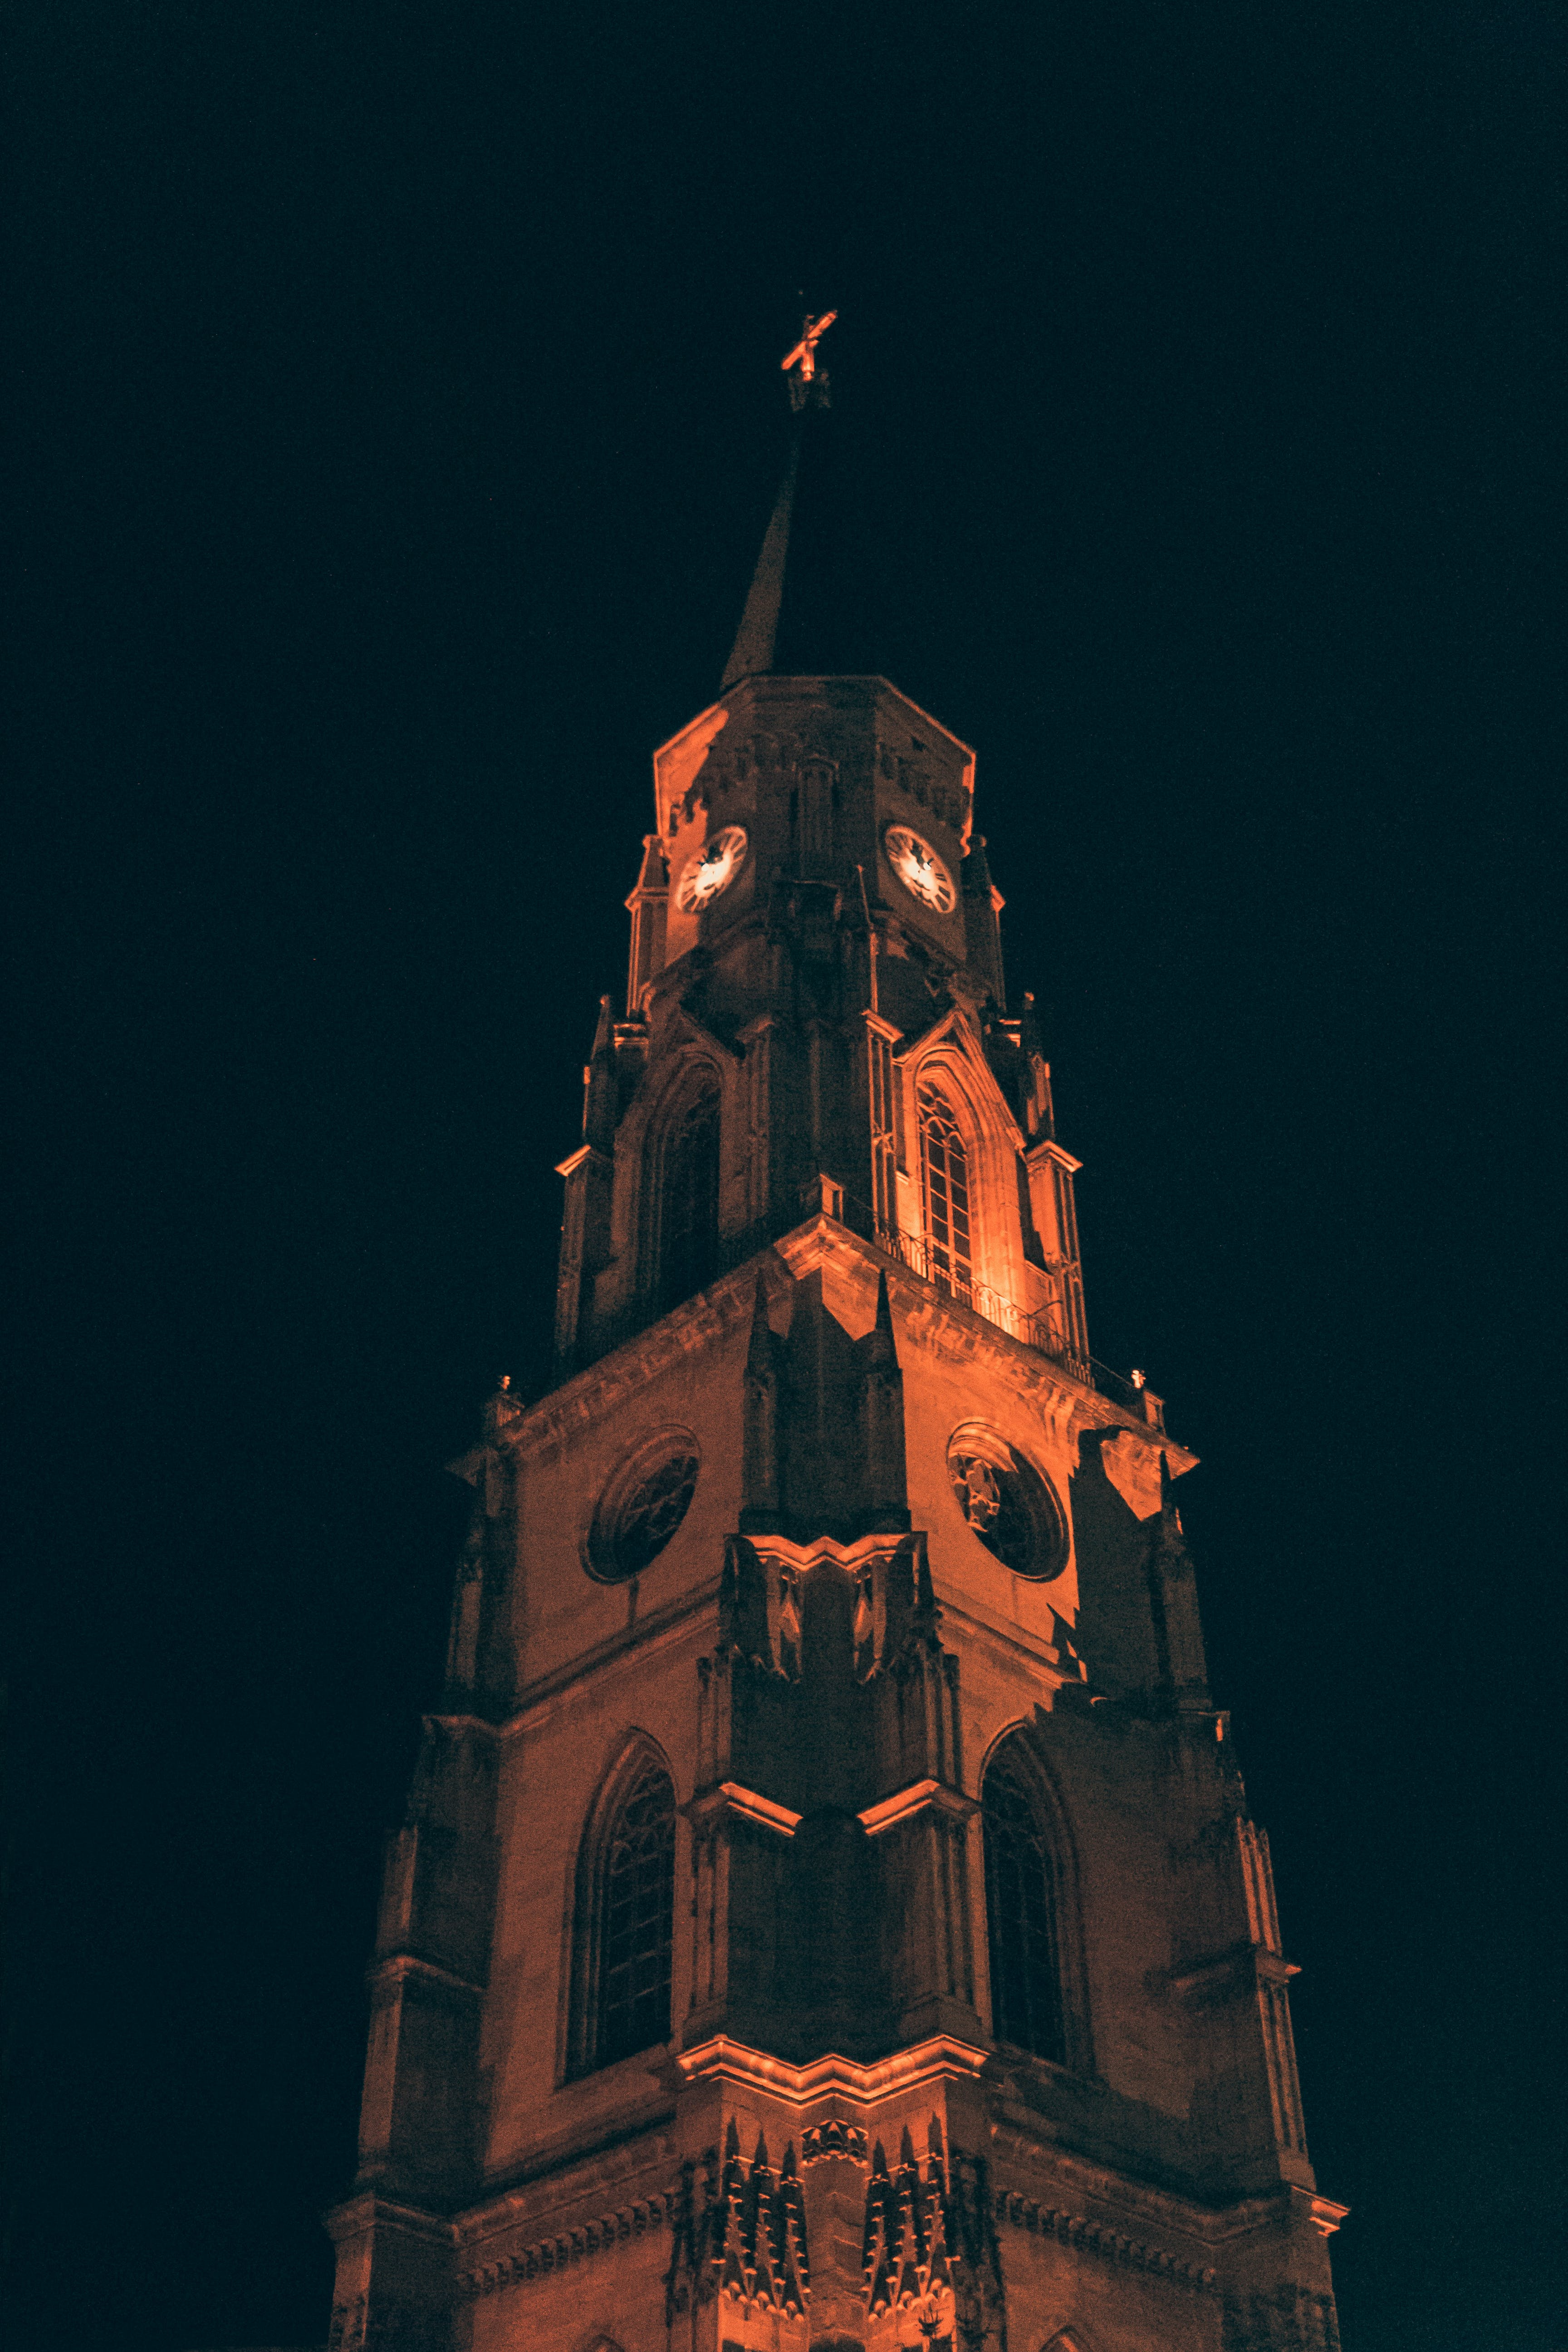 Brown Concrete Tower at Night Time